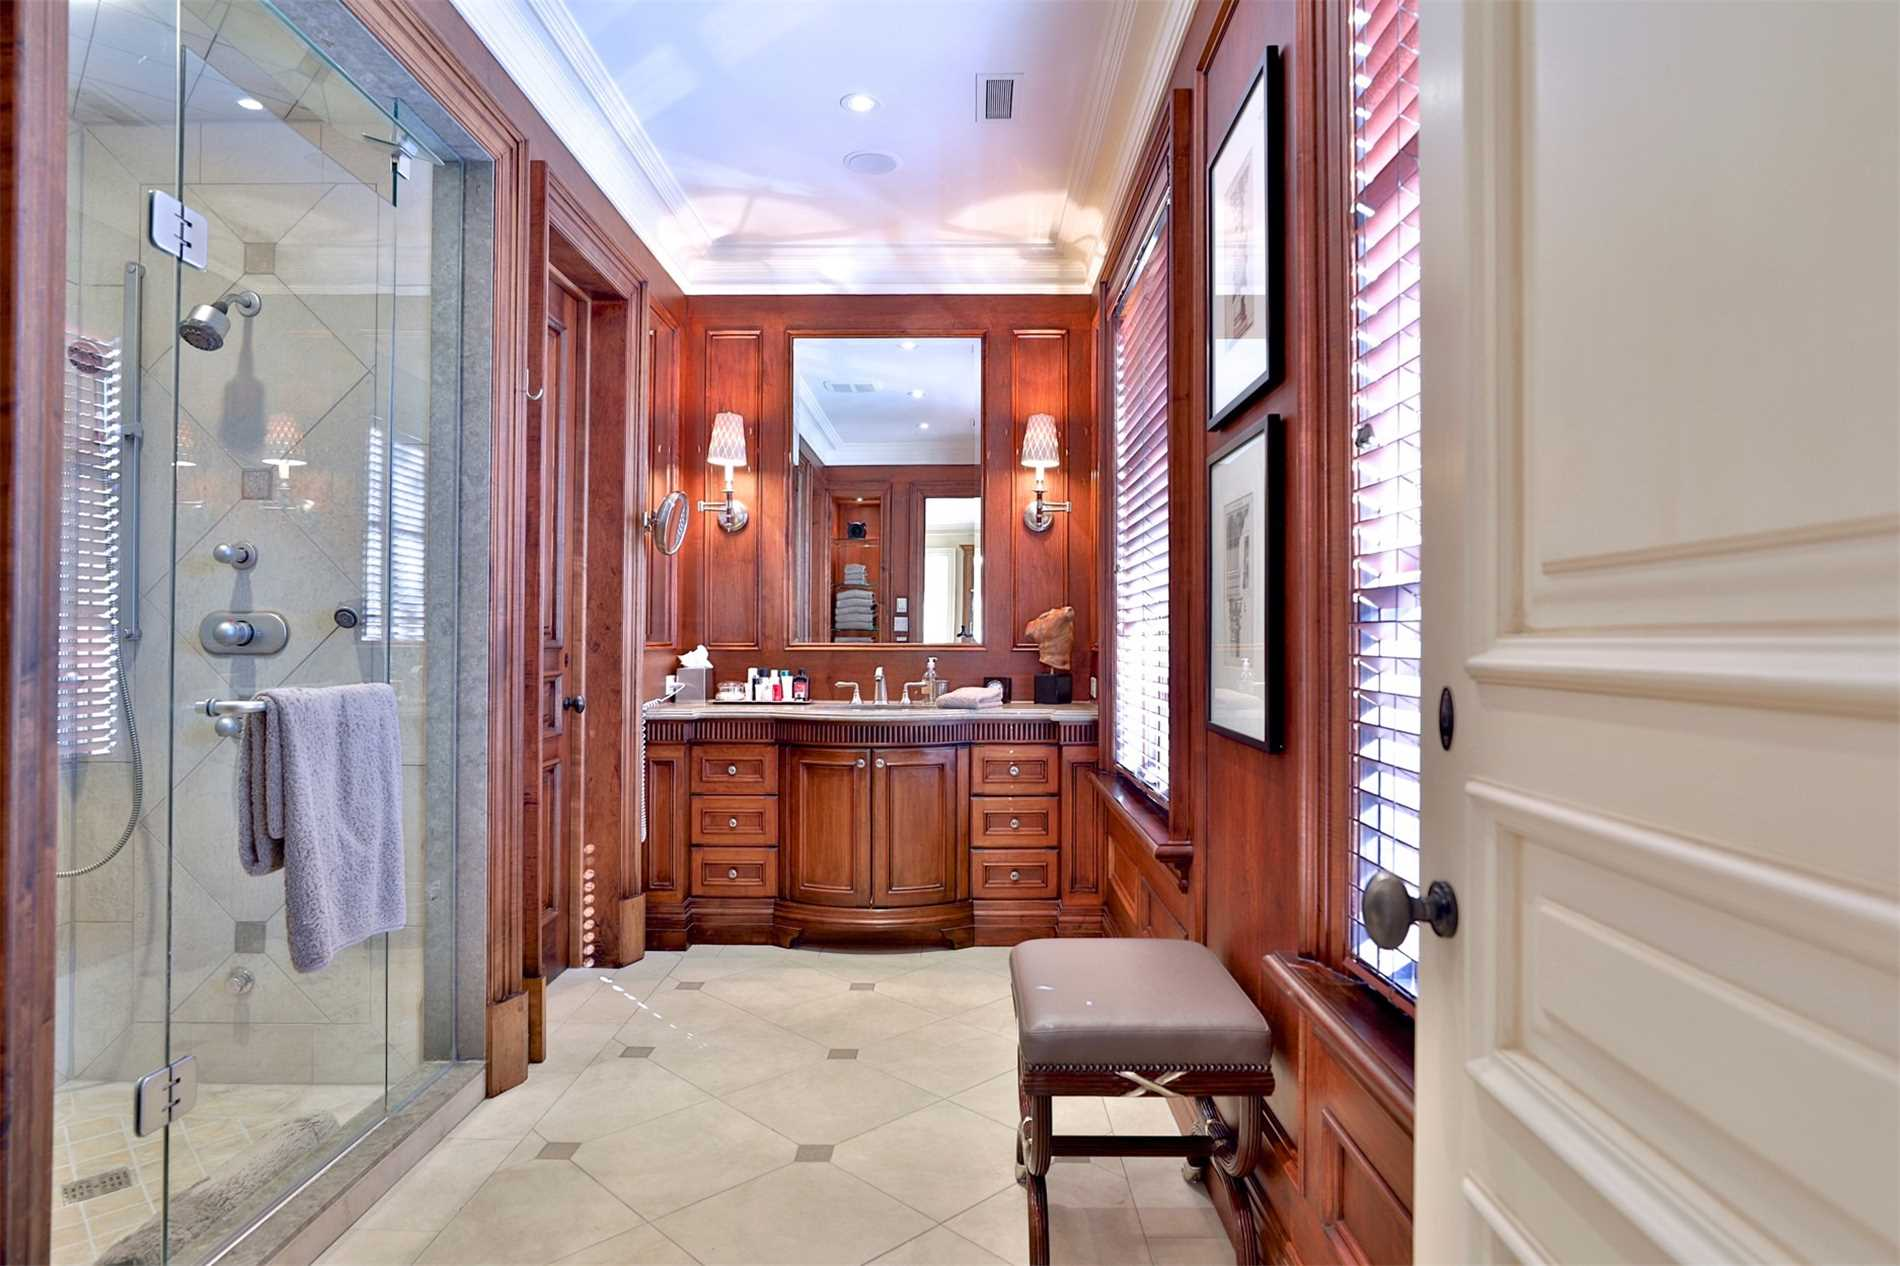 95 Old Colony Rd, Toronto, Ontario M2L 2K3, 4 Bedrooms Bedrooms, 14 Rooms Rooms,9 BathroomsBathrooms,Detached,For Sale,Old Colony,C4780816